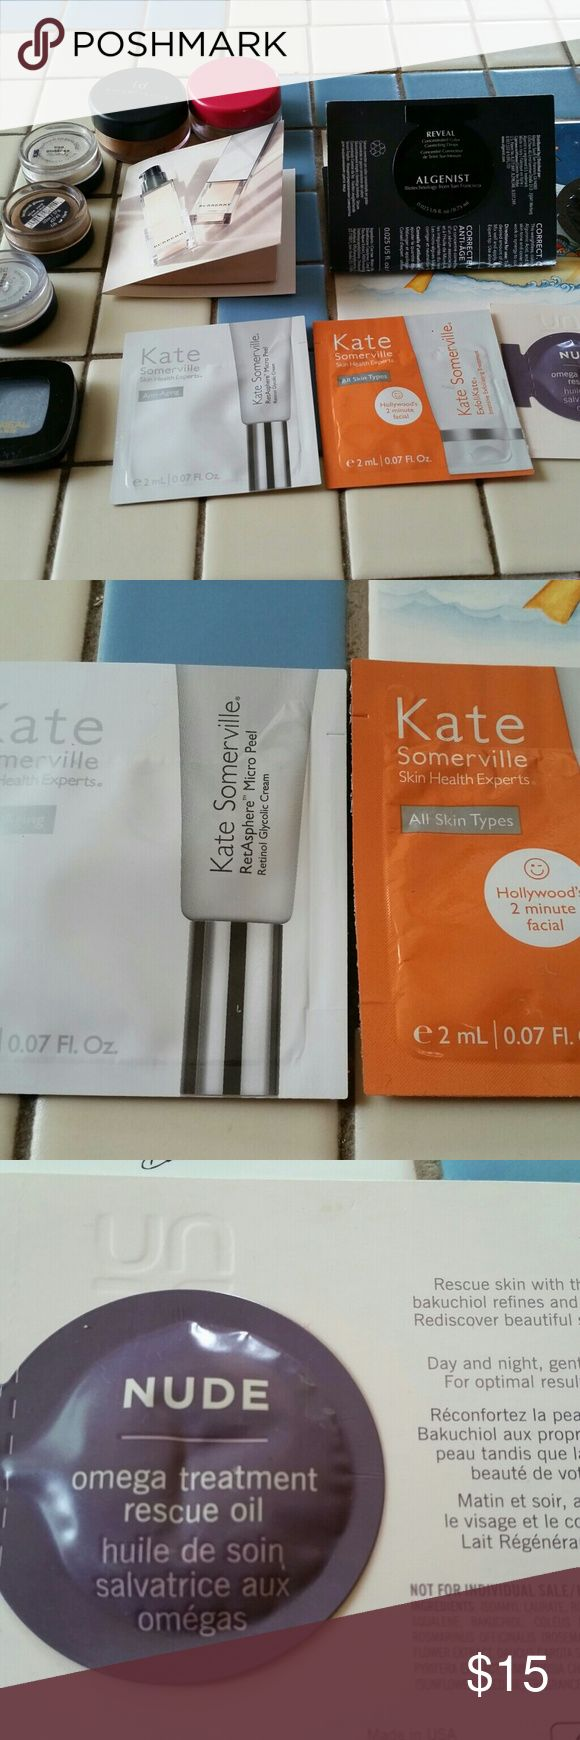 Makeup samples with Bare Minerals bonus! Lots of deluxe samples, all new... Kate Somerville exfoliate and micropeel (2 samples), Nude omega rescue oil, Creme du Nil moisturizer, Algenist Reveal color correcting drops, Burberry luminous fluid. Also included as a bonus... Three bare minerals eyeshadow, two bare minerals blush, and one l'oreal eyeshadow... All have been opened and used, but at least half remains in all. Comes from nonsmoking home and I ship quickly! Makeup